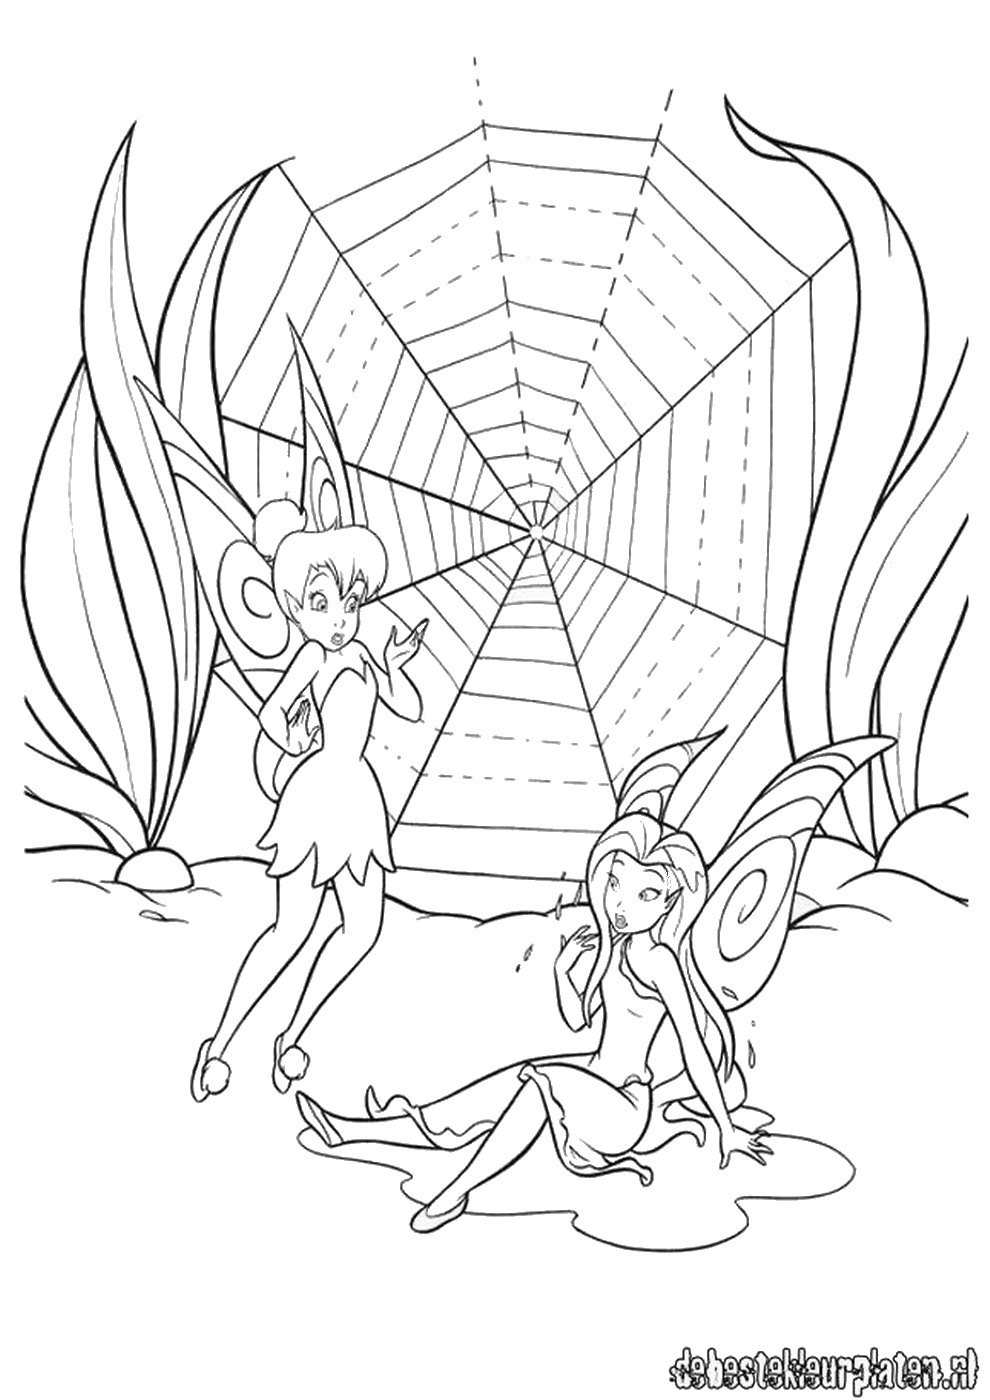 tinkerbell coloring sheets tinker bell coloring pages to download and print for free coloring sheets tinkerbell